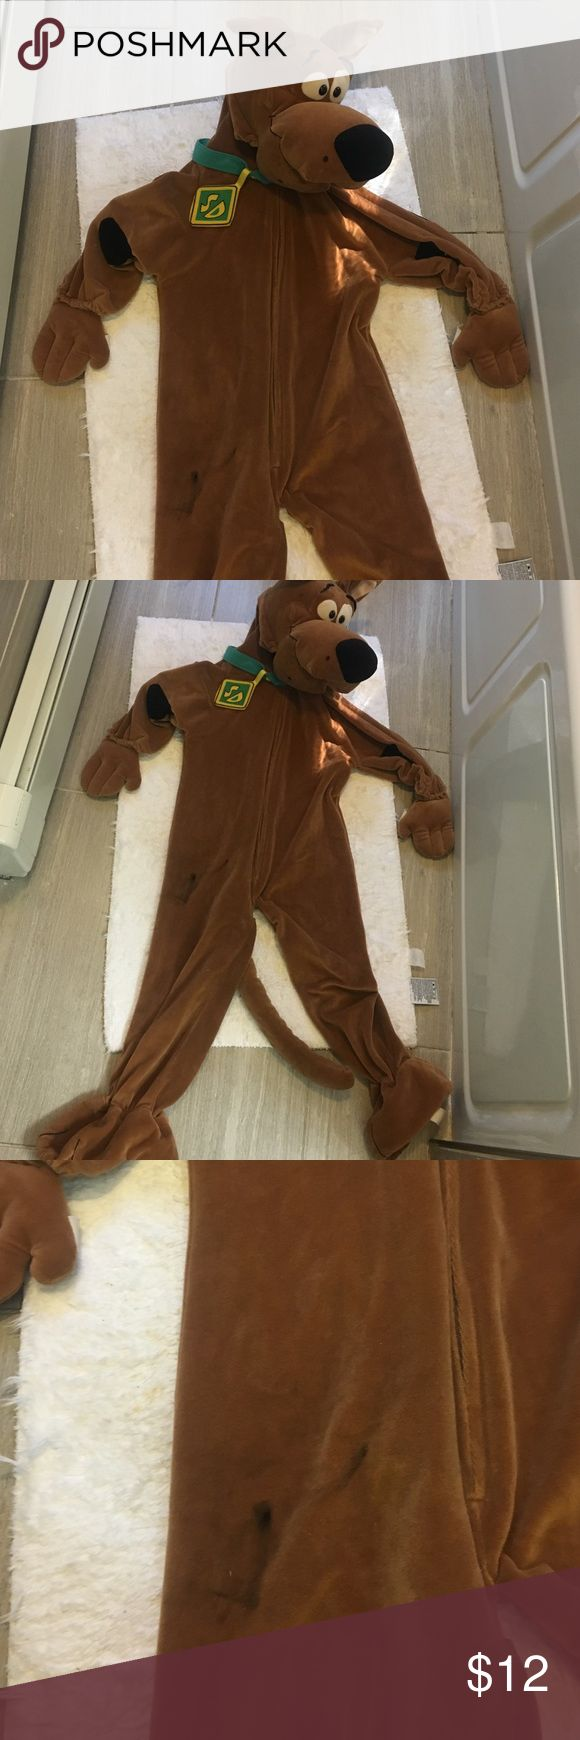 🎈SALE🎈Scooby doo kids costume Fits 4-6 it has some stain as show in a picture and has a hole between the legs not noticeable. Stain may come out if wash. This is the reason why it is price so low!! Cartoon networt Costumes